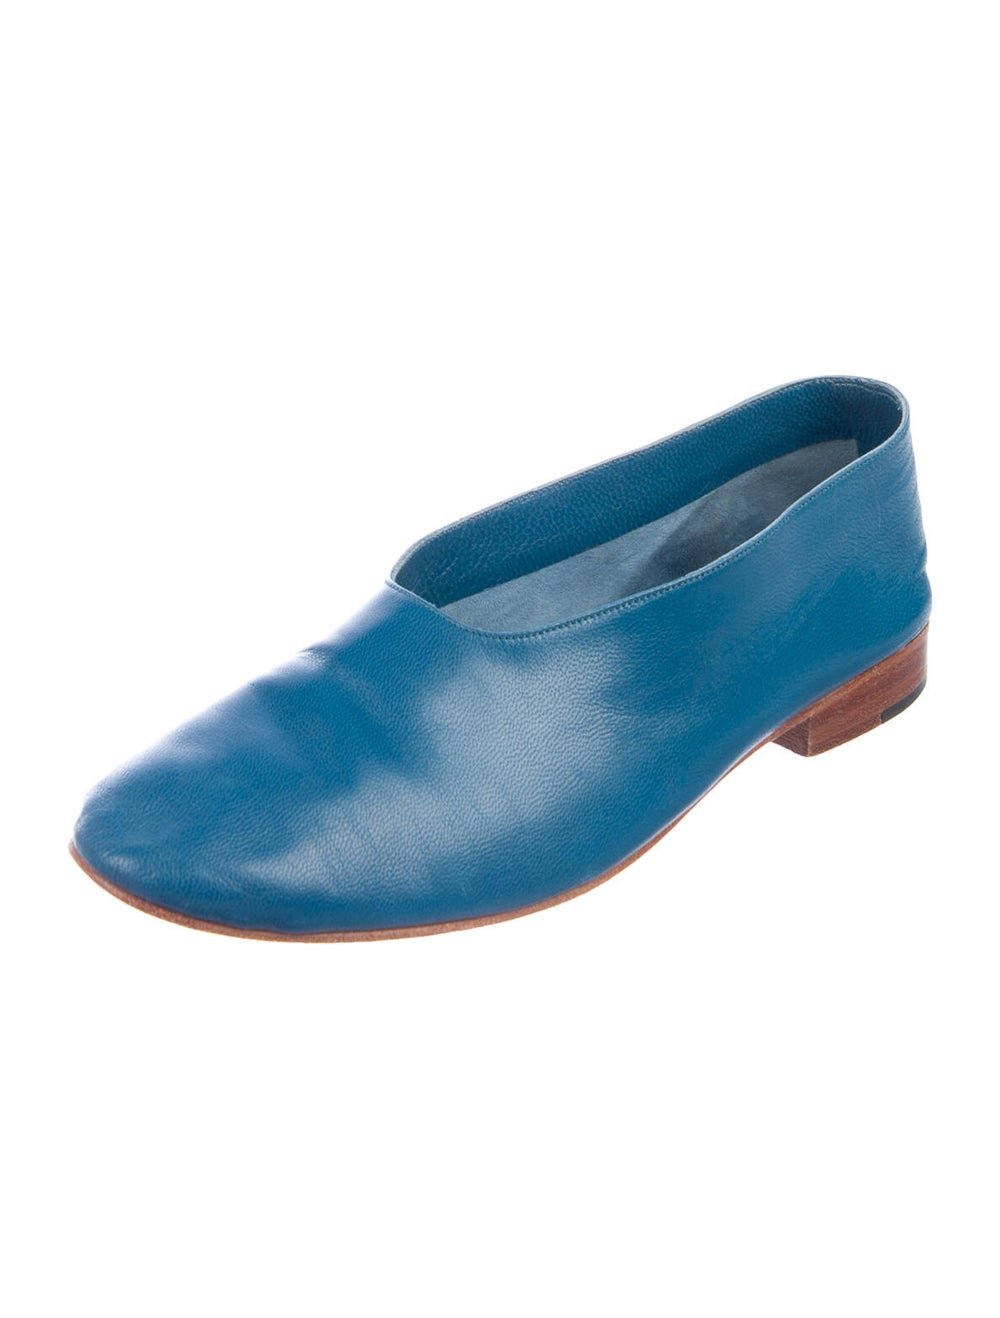 Martiniano Leather Flats Blue - image 2